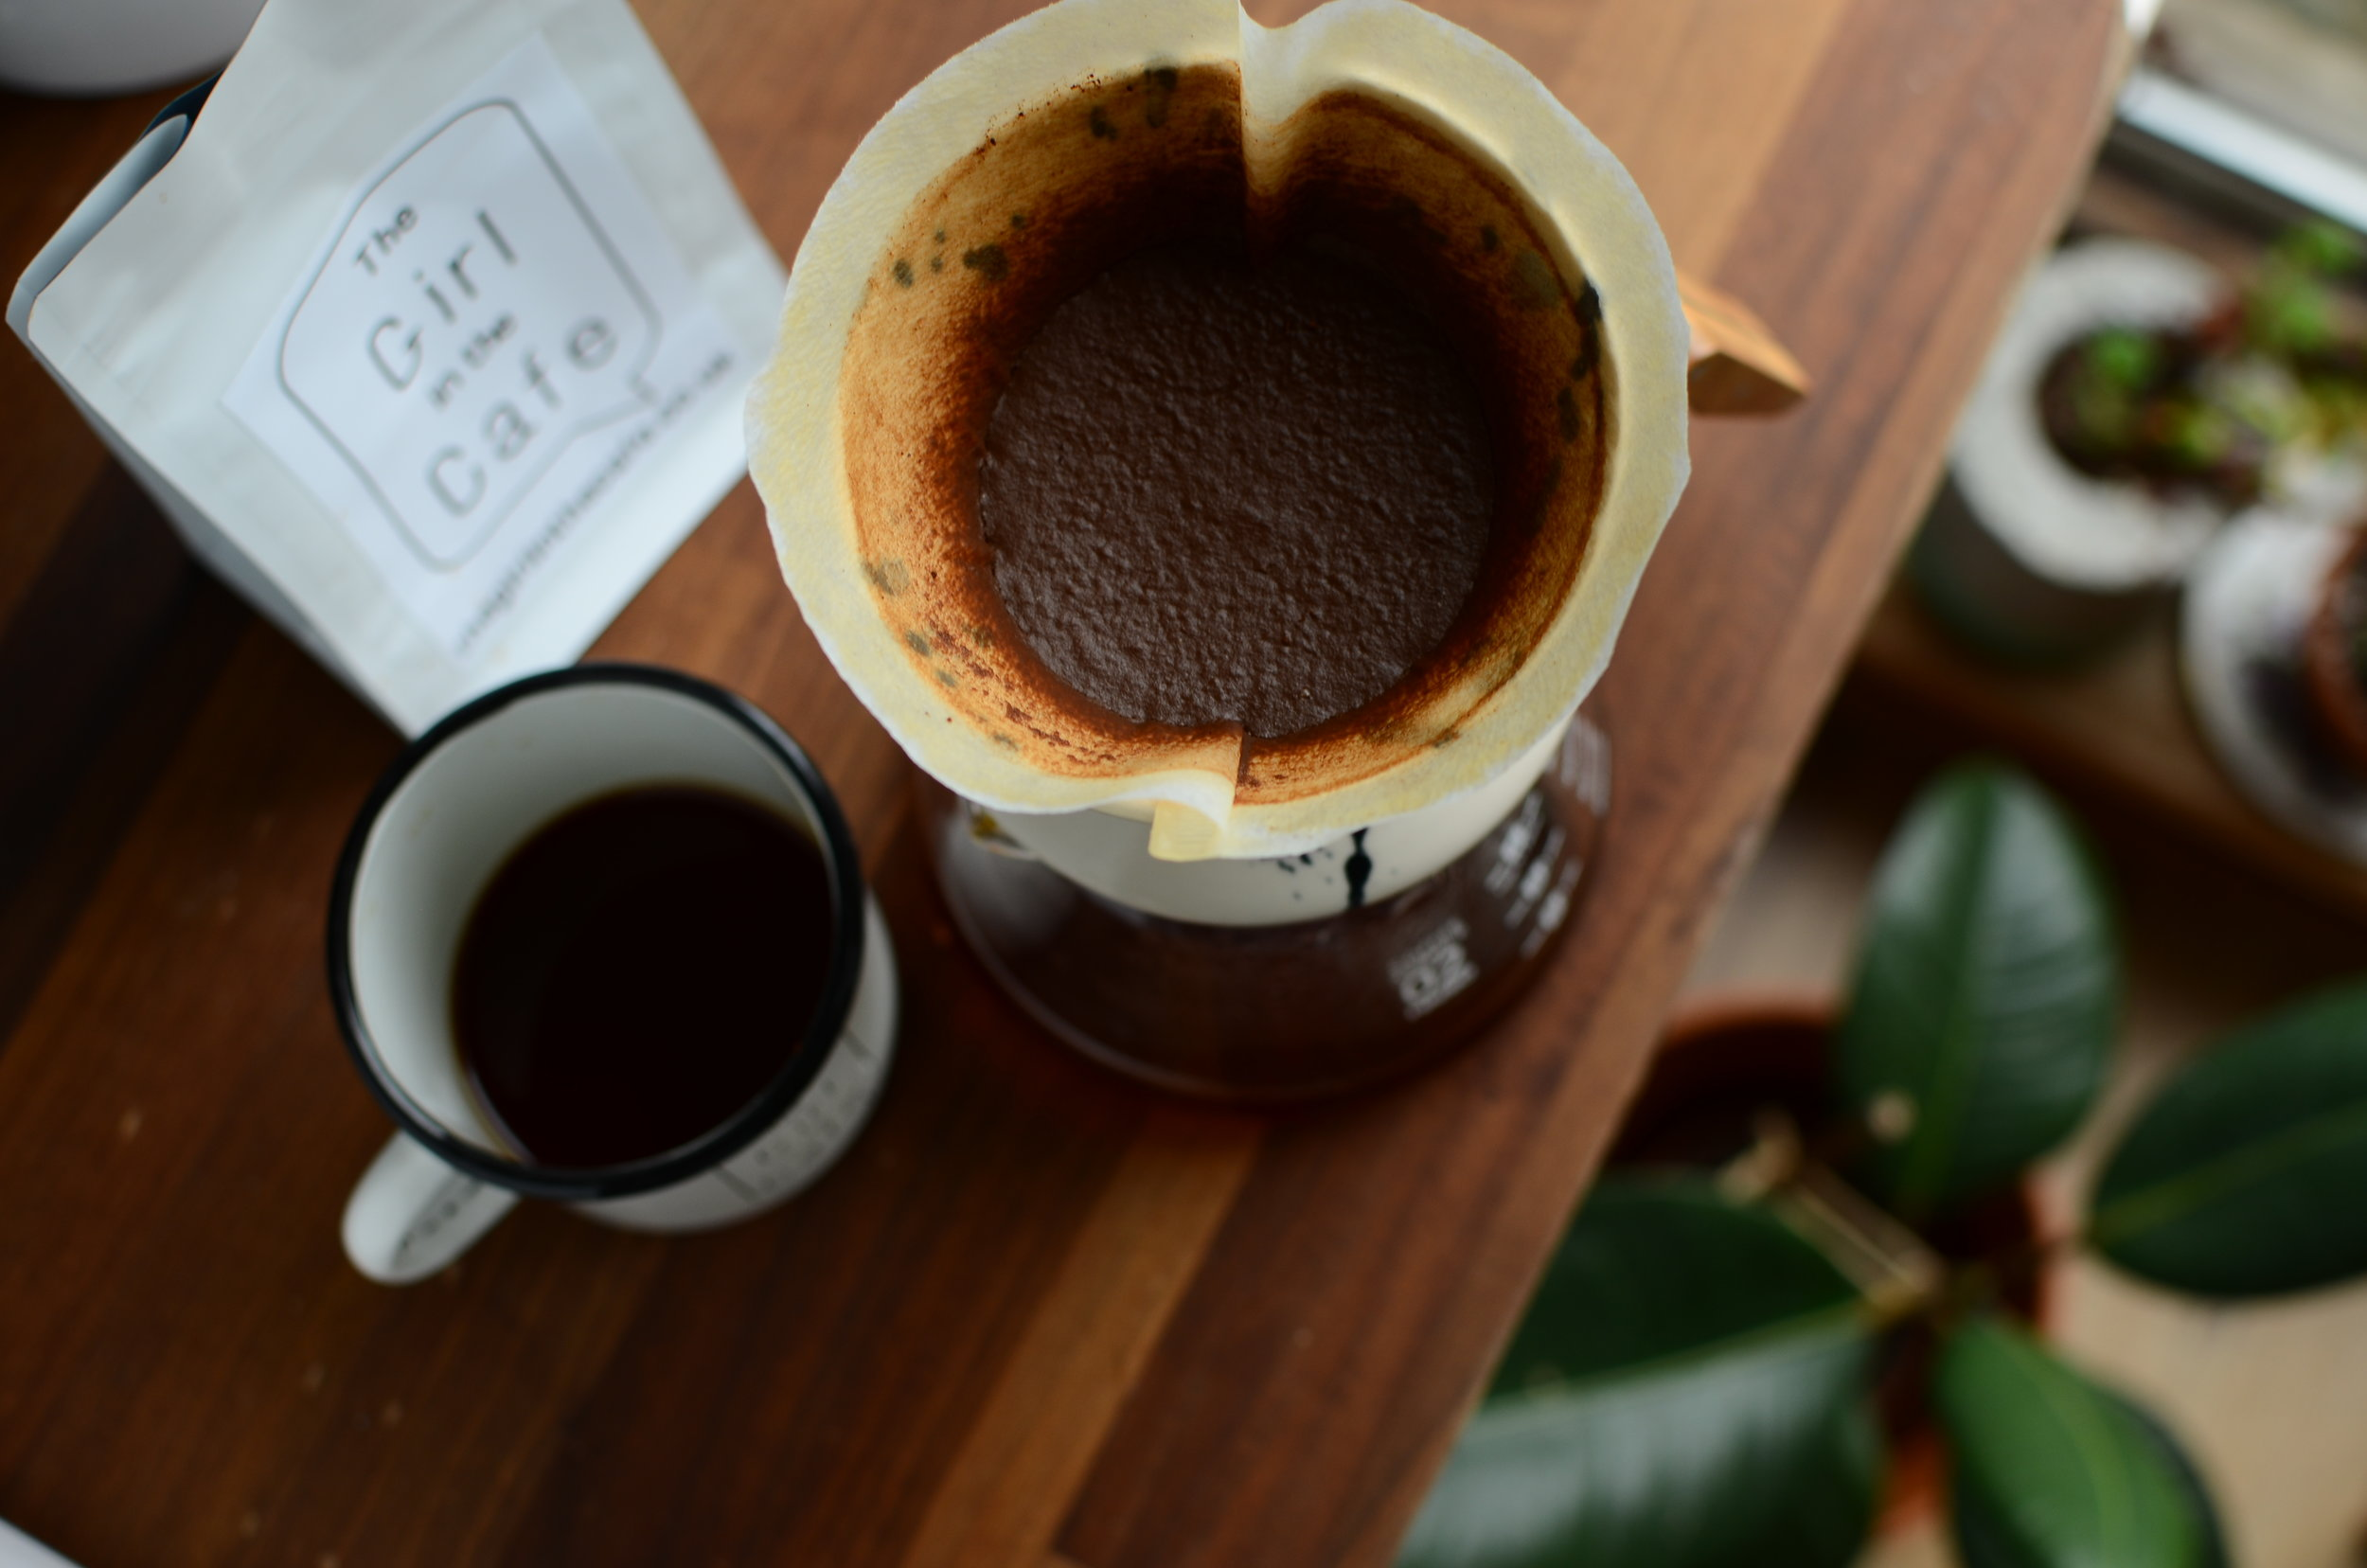 Making filter at home is a really good way to get to taste characteristics of coffee.